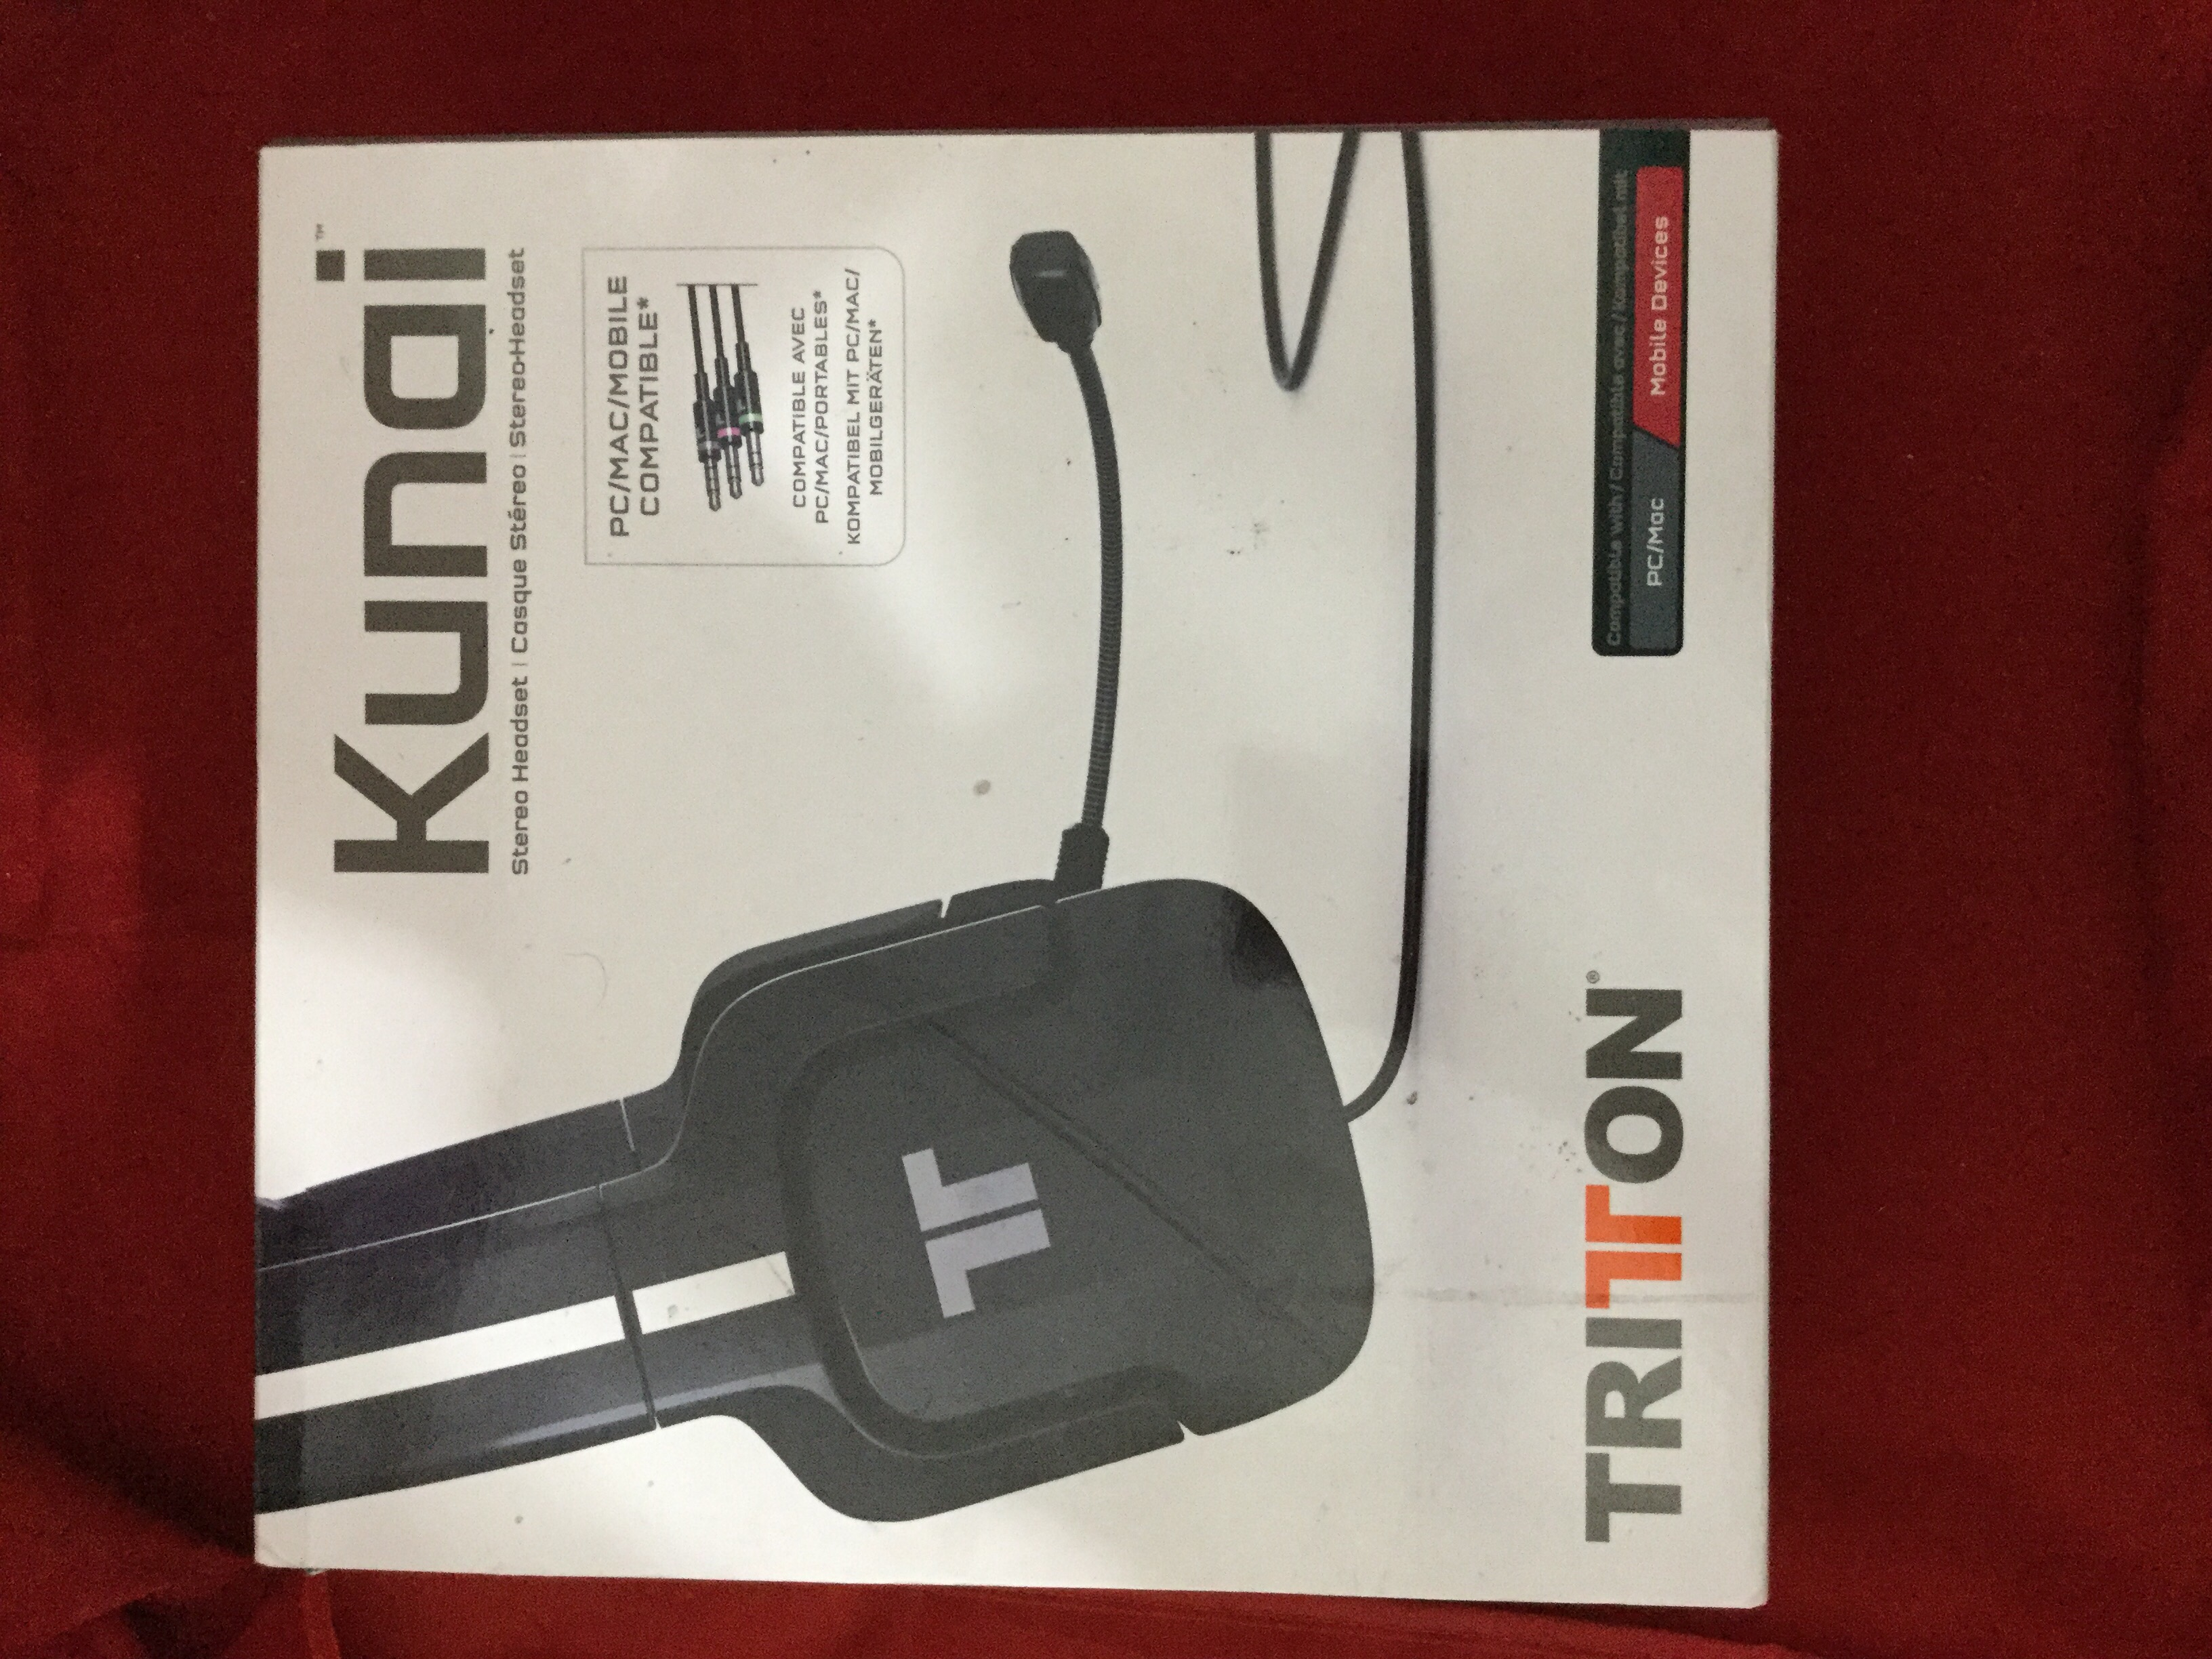 Details about TRITTON Kunai Stereo Headset for PC and MAC SN206862